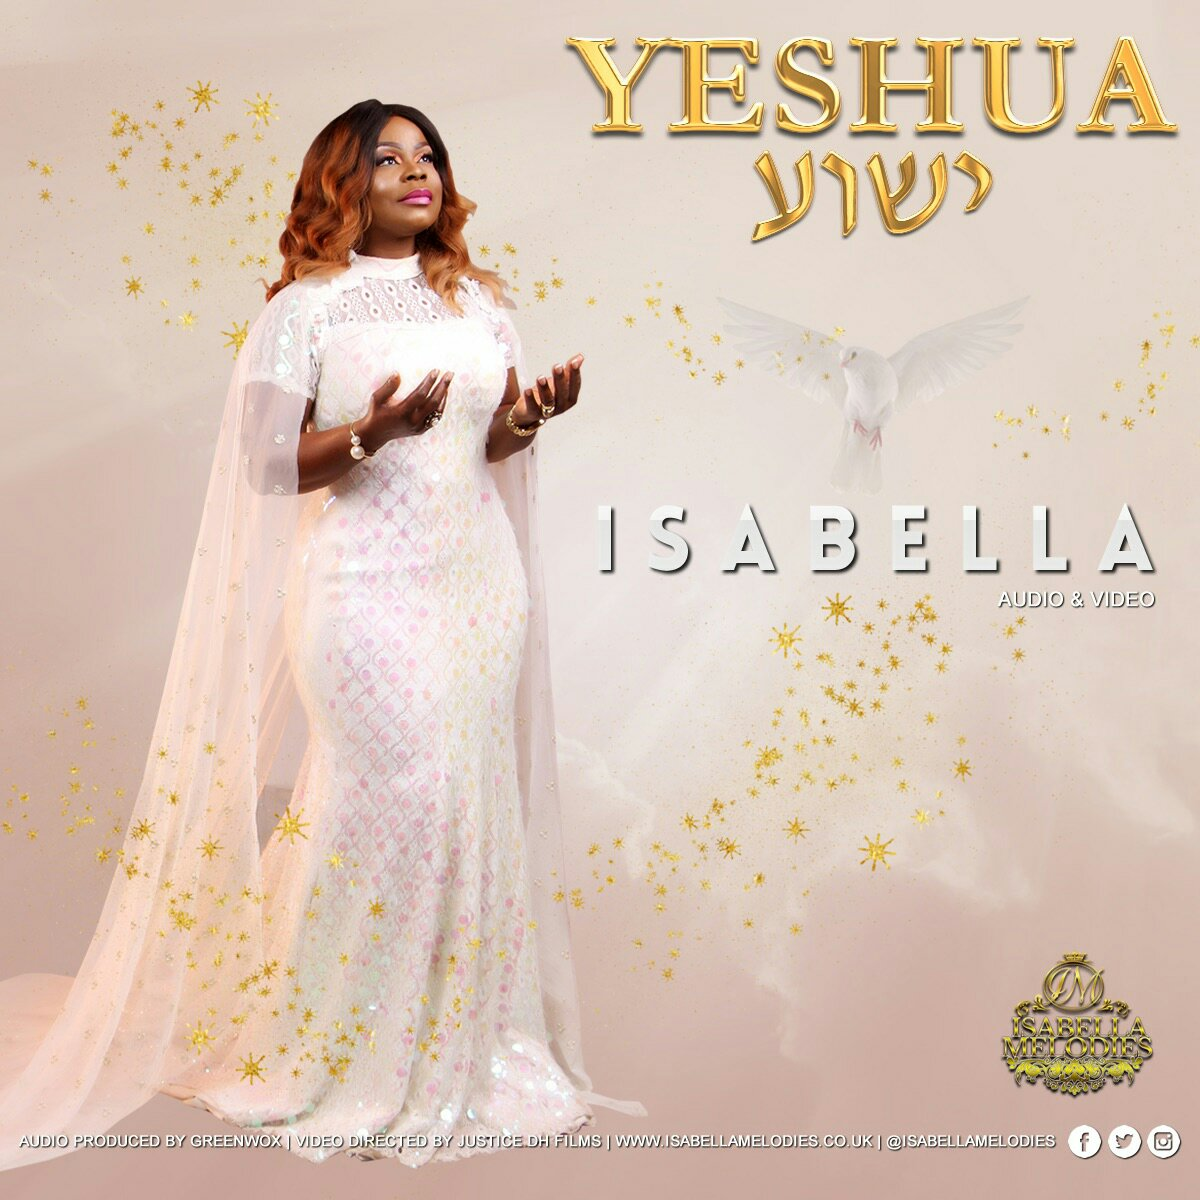 MUSIC Video + Audio: Isabella - Yeshua